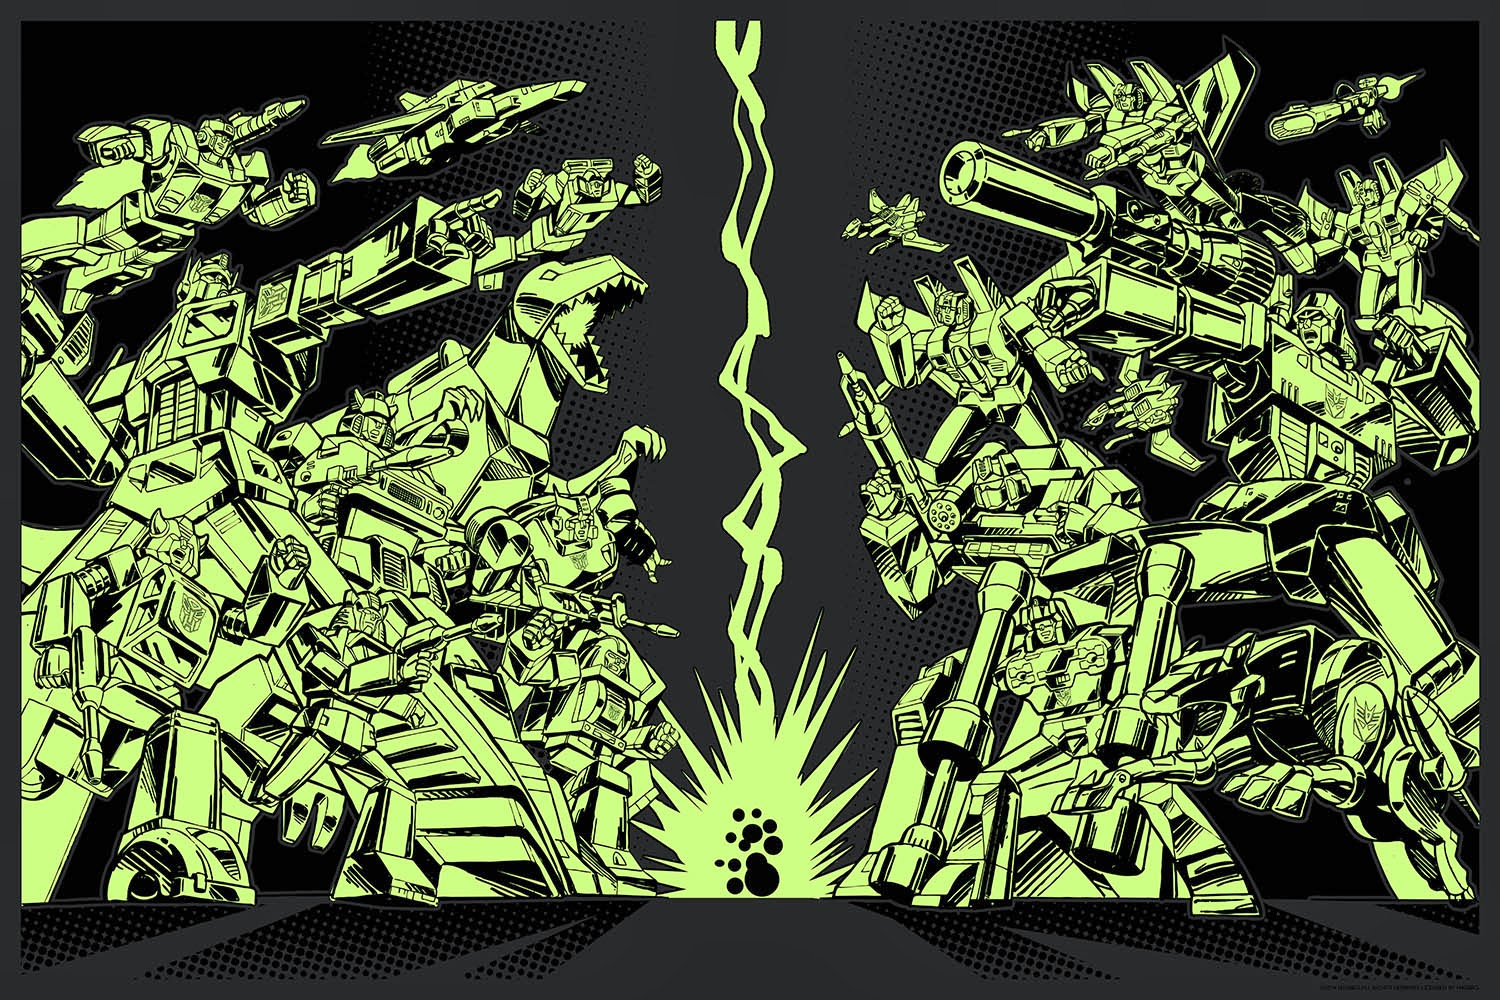 Transformers 30th Anniversary Glow in the Dark Variant Screen Print by Guido Guidi